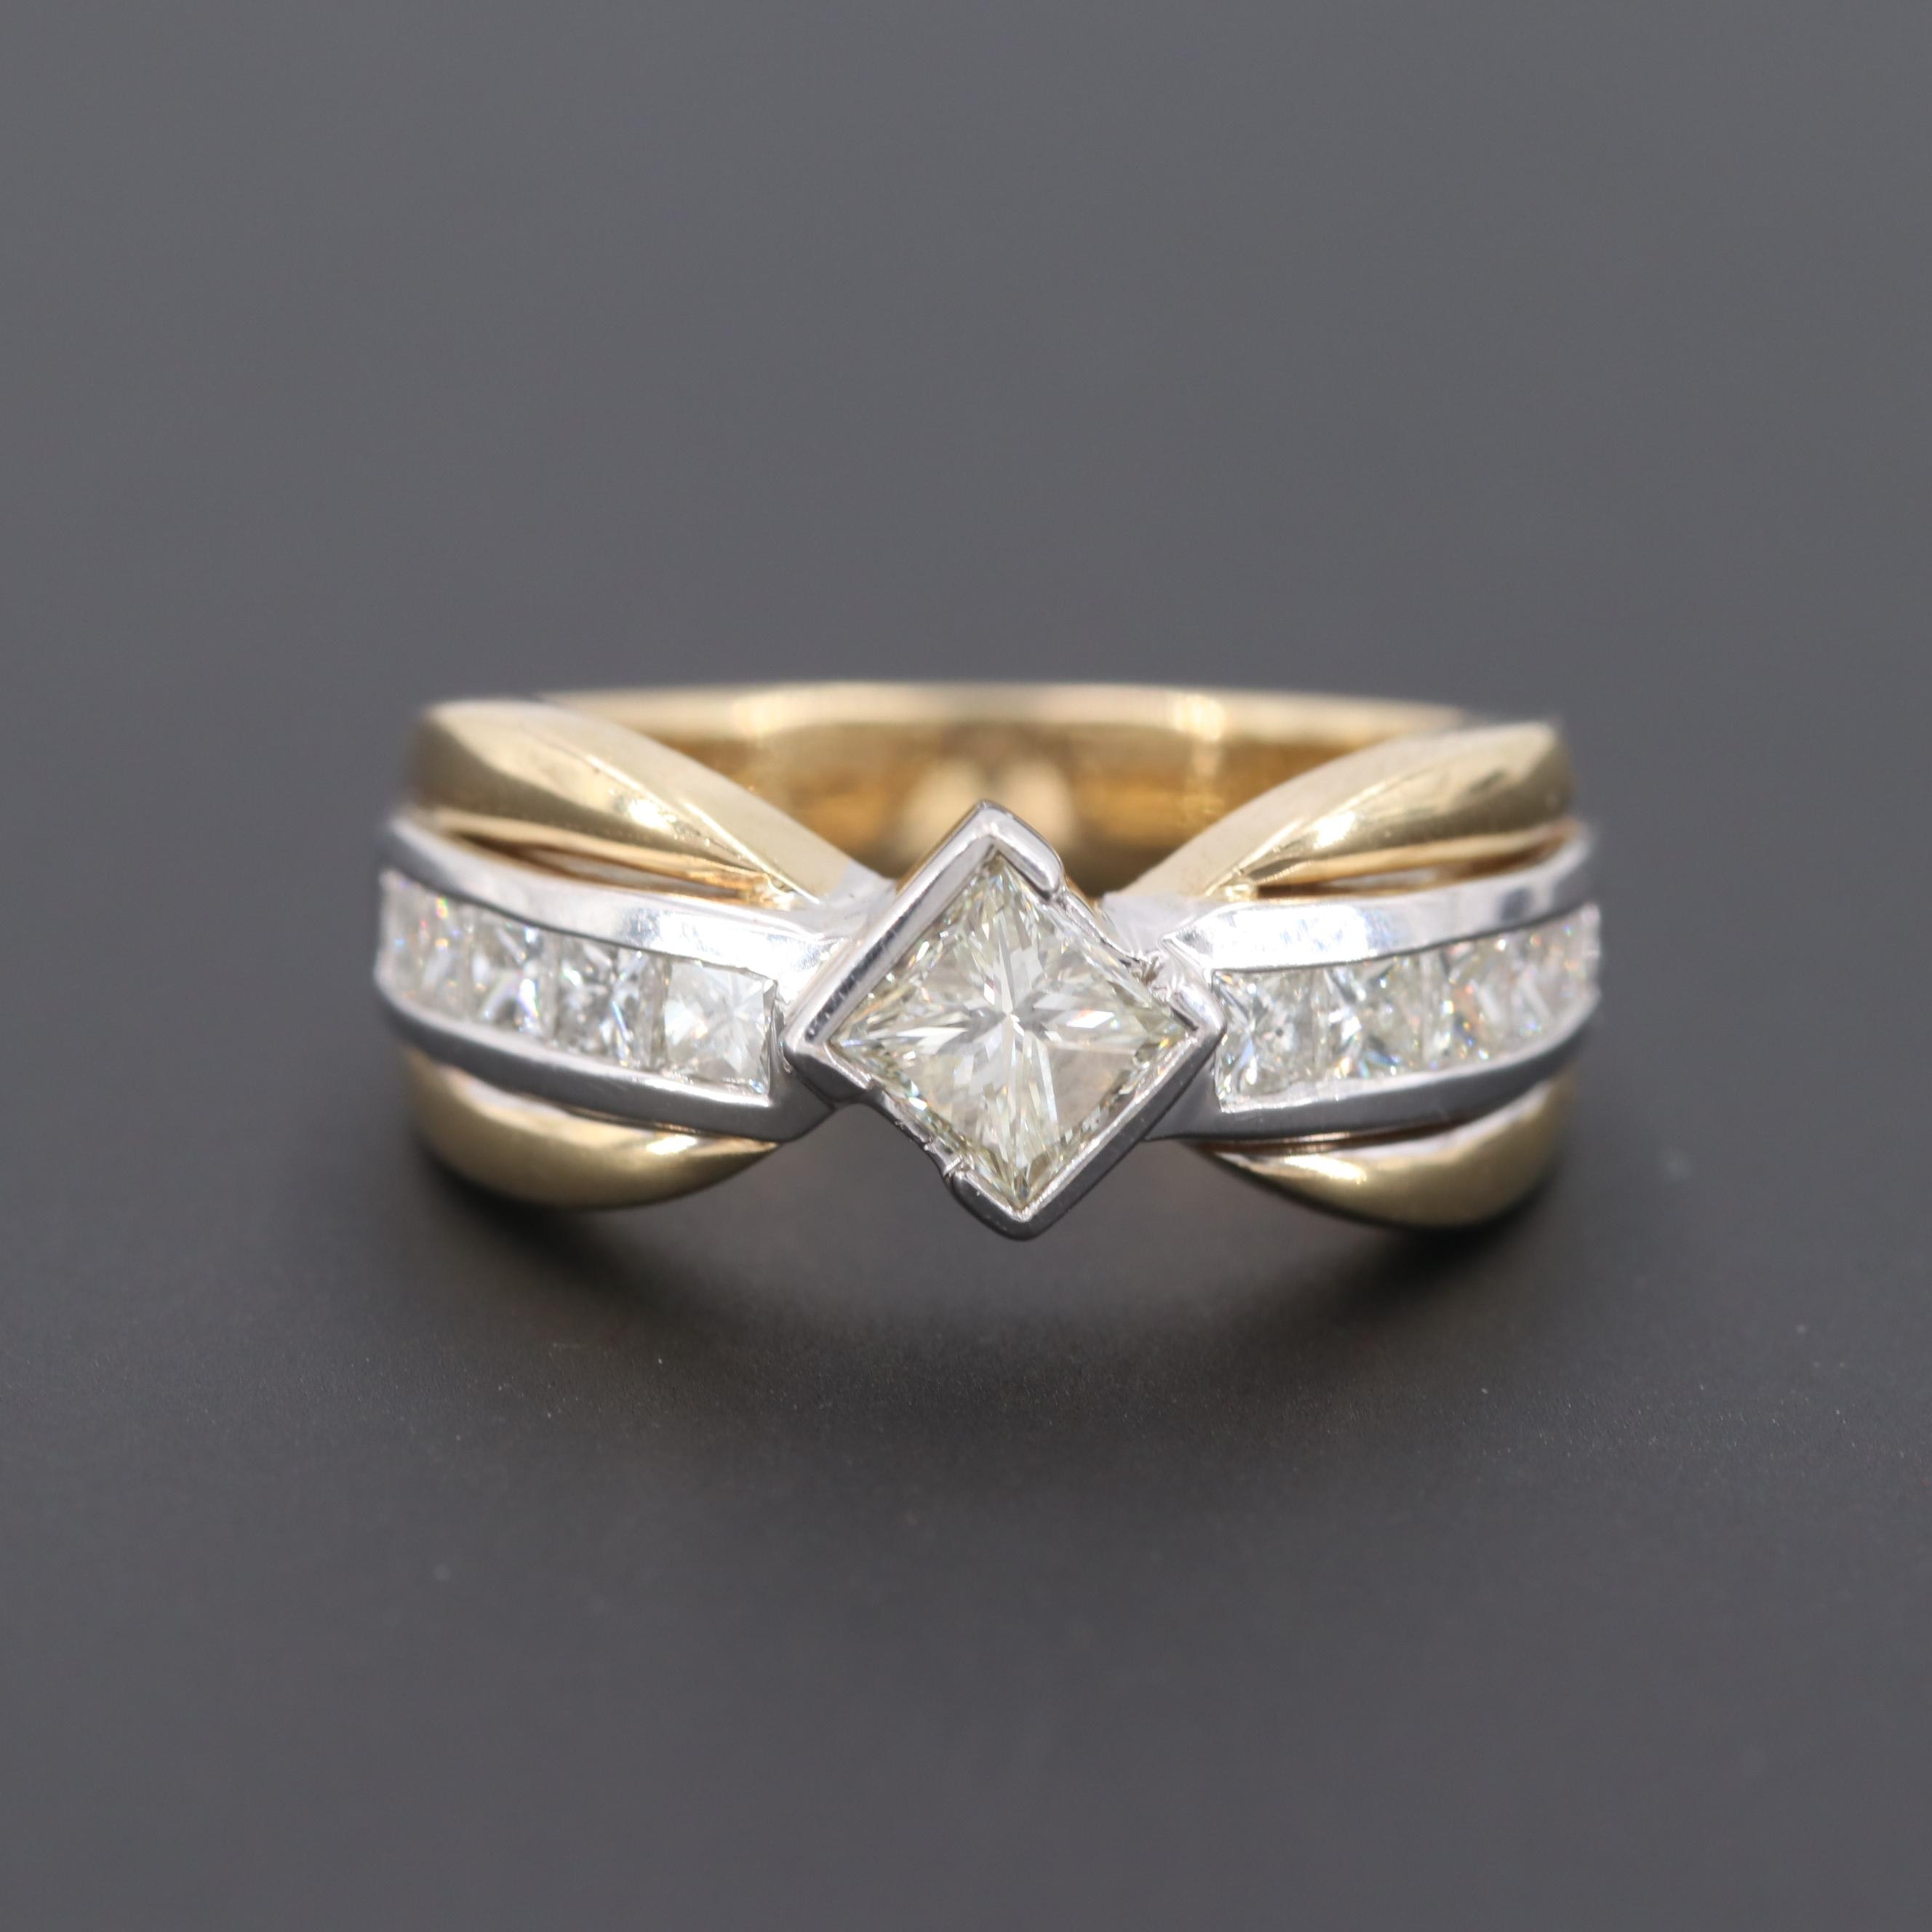 14K Yellow and White Gold 1.23 CTW Diamond Ring